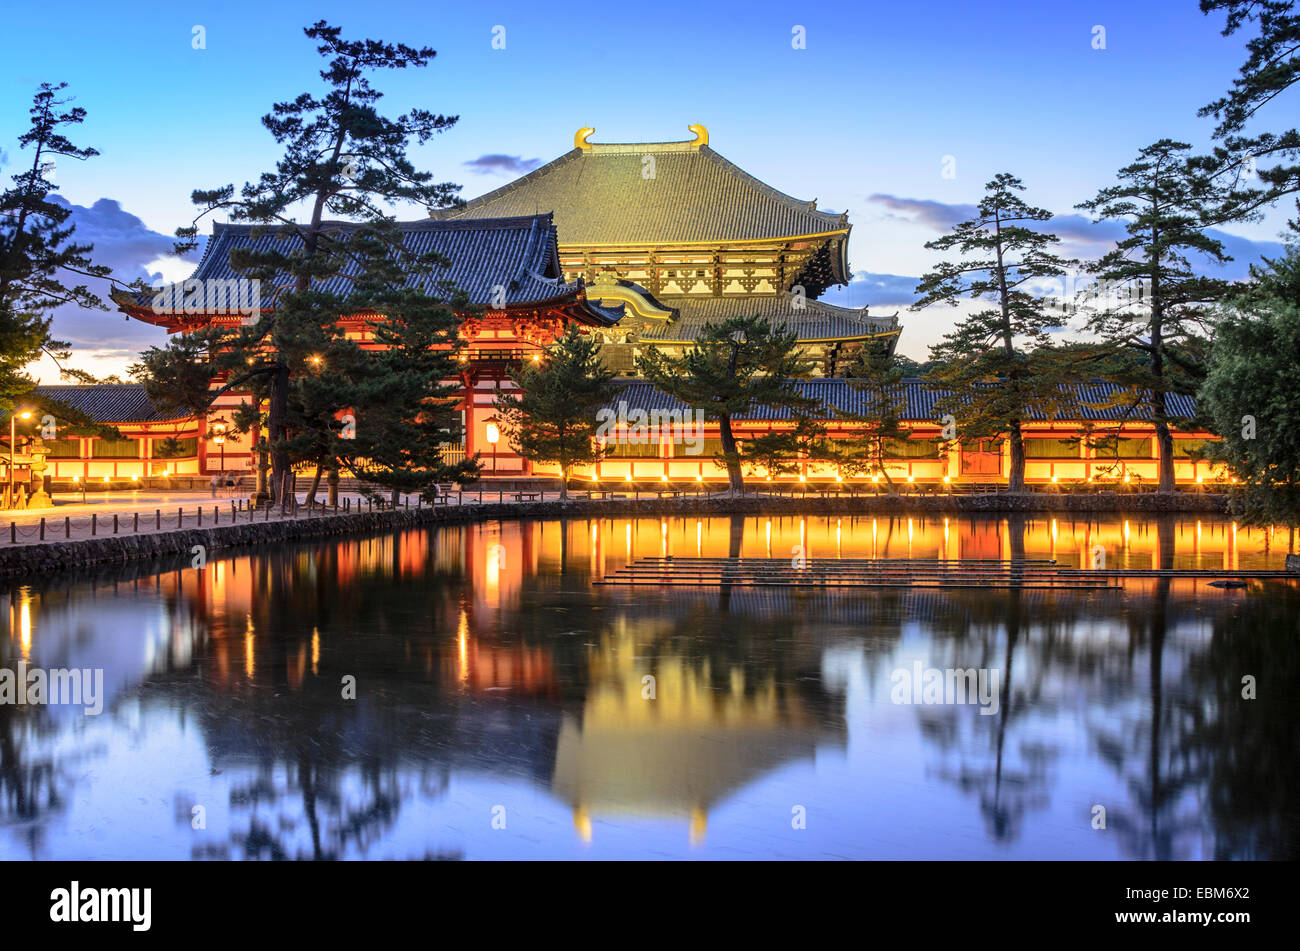 Nara, Japan at Todaiji Temple at twilight. - Stock Image